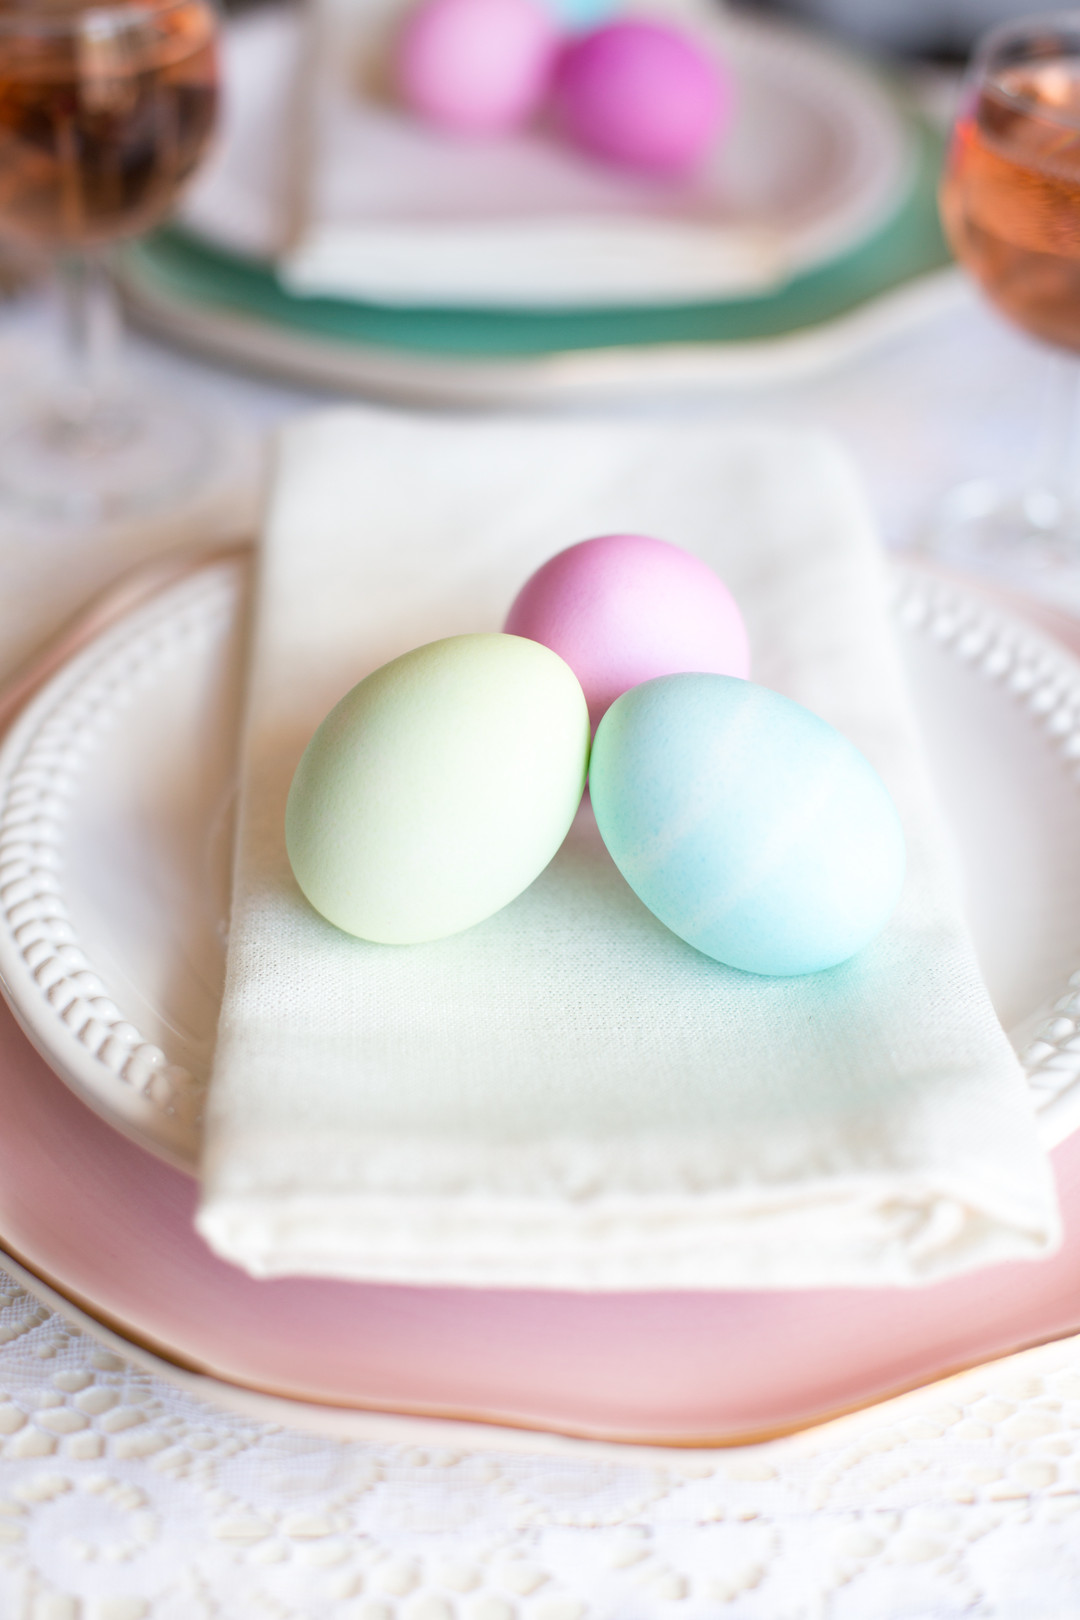 Staal_KristinaStaalPhotography_KristinaStaalPhotographyEasterTablescape201613_big Easy Entertaining: Easter Brunch Inspiration for Two